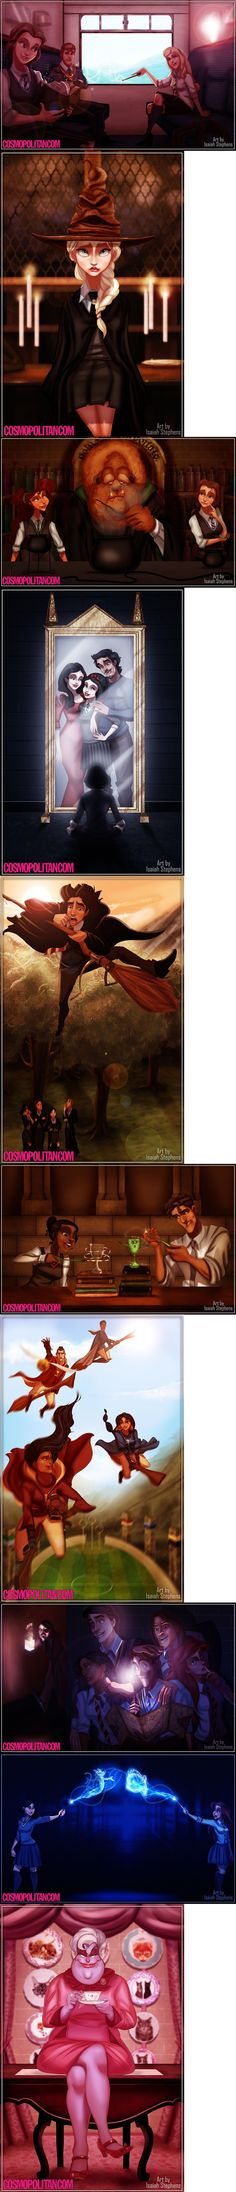 If Disney Princesses Went To Hogwarts